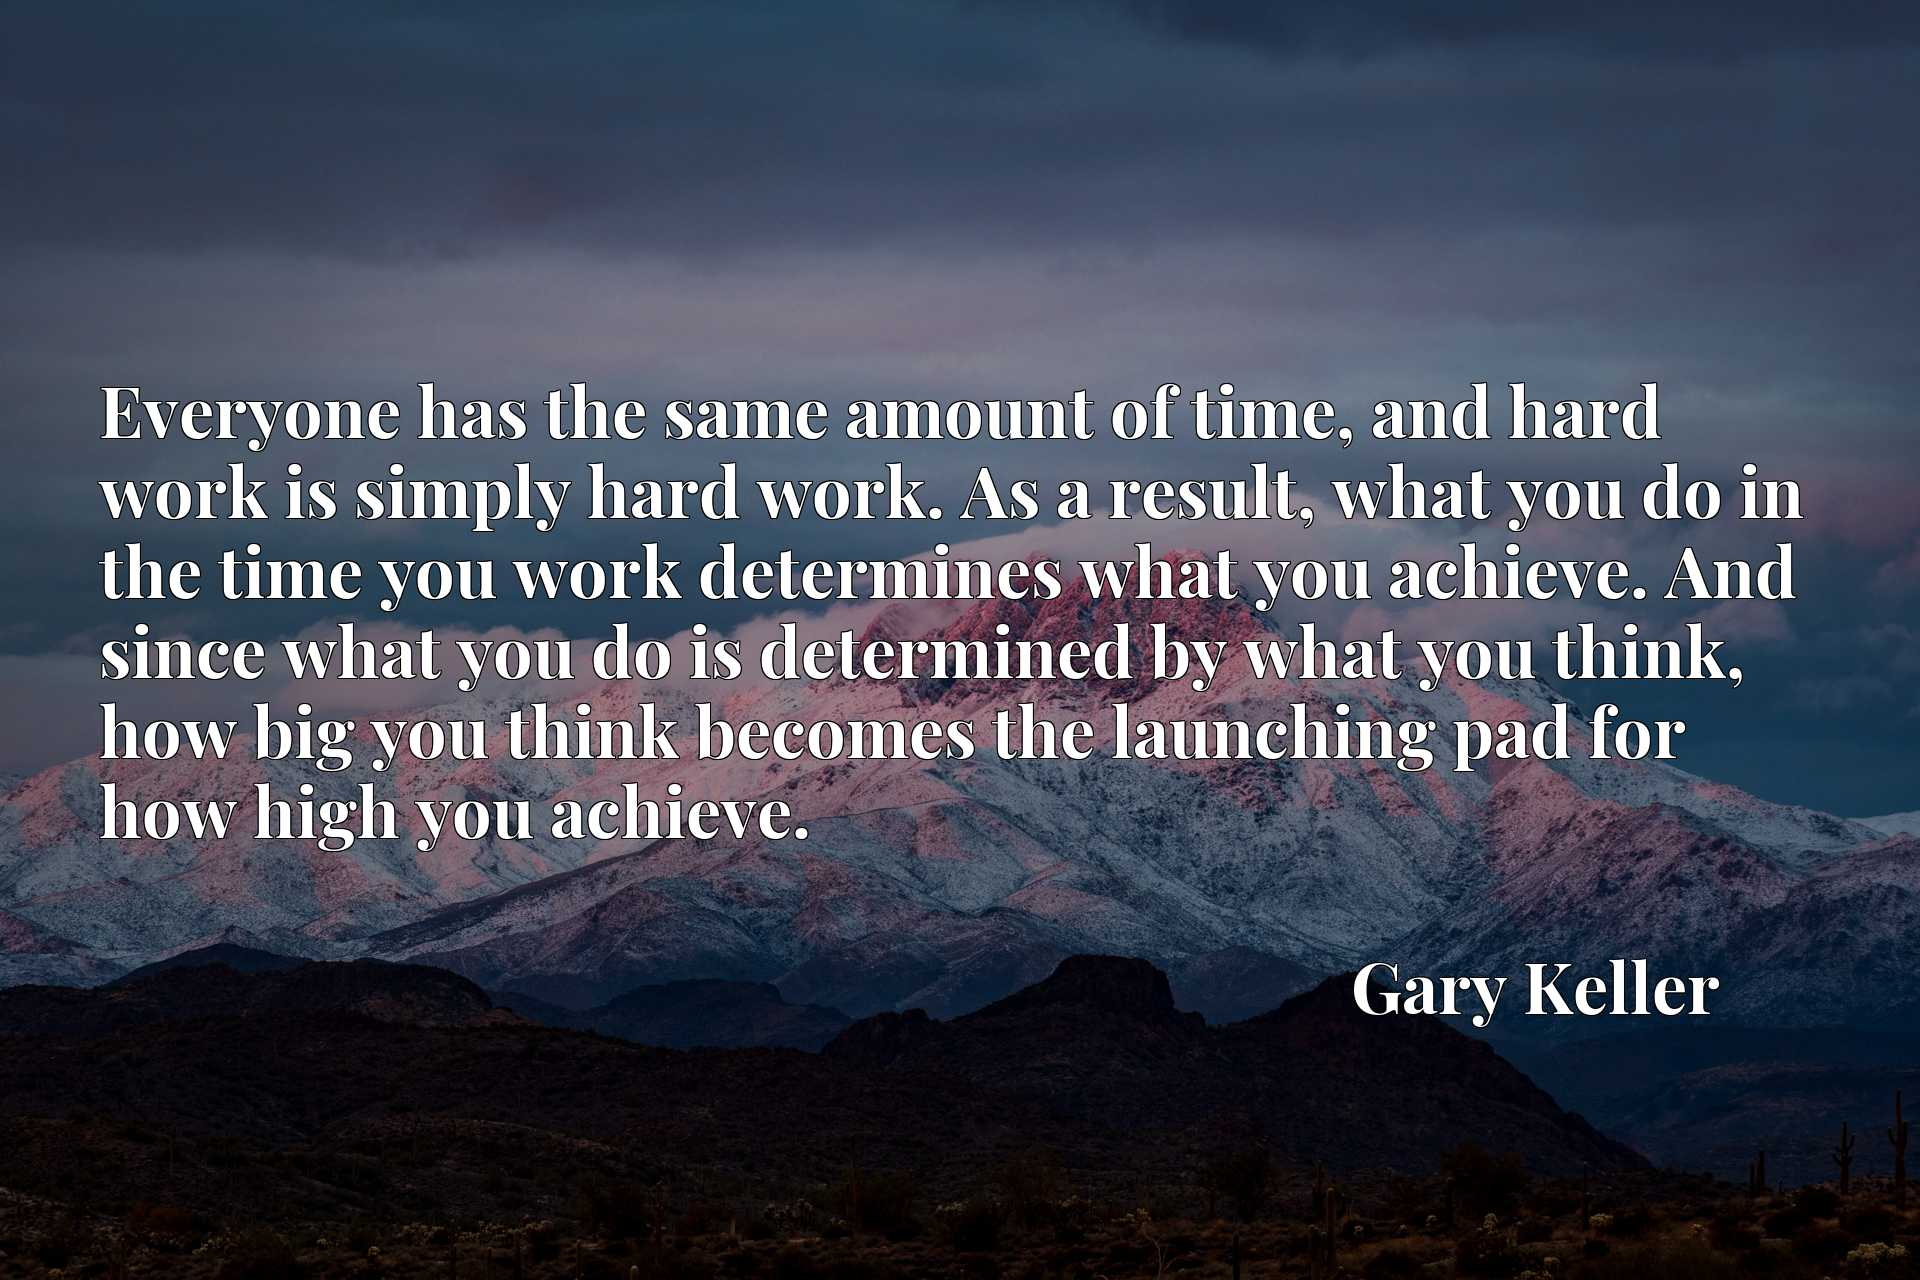 Everyone has the same amount of time, and hard work is simply hard work. As a result, what you do in the time you work determines what you achieve. And since what you do is determined by what you think, how big you think becomes the launching pad for how high you achieve.